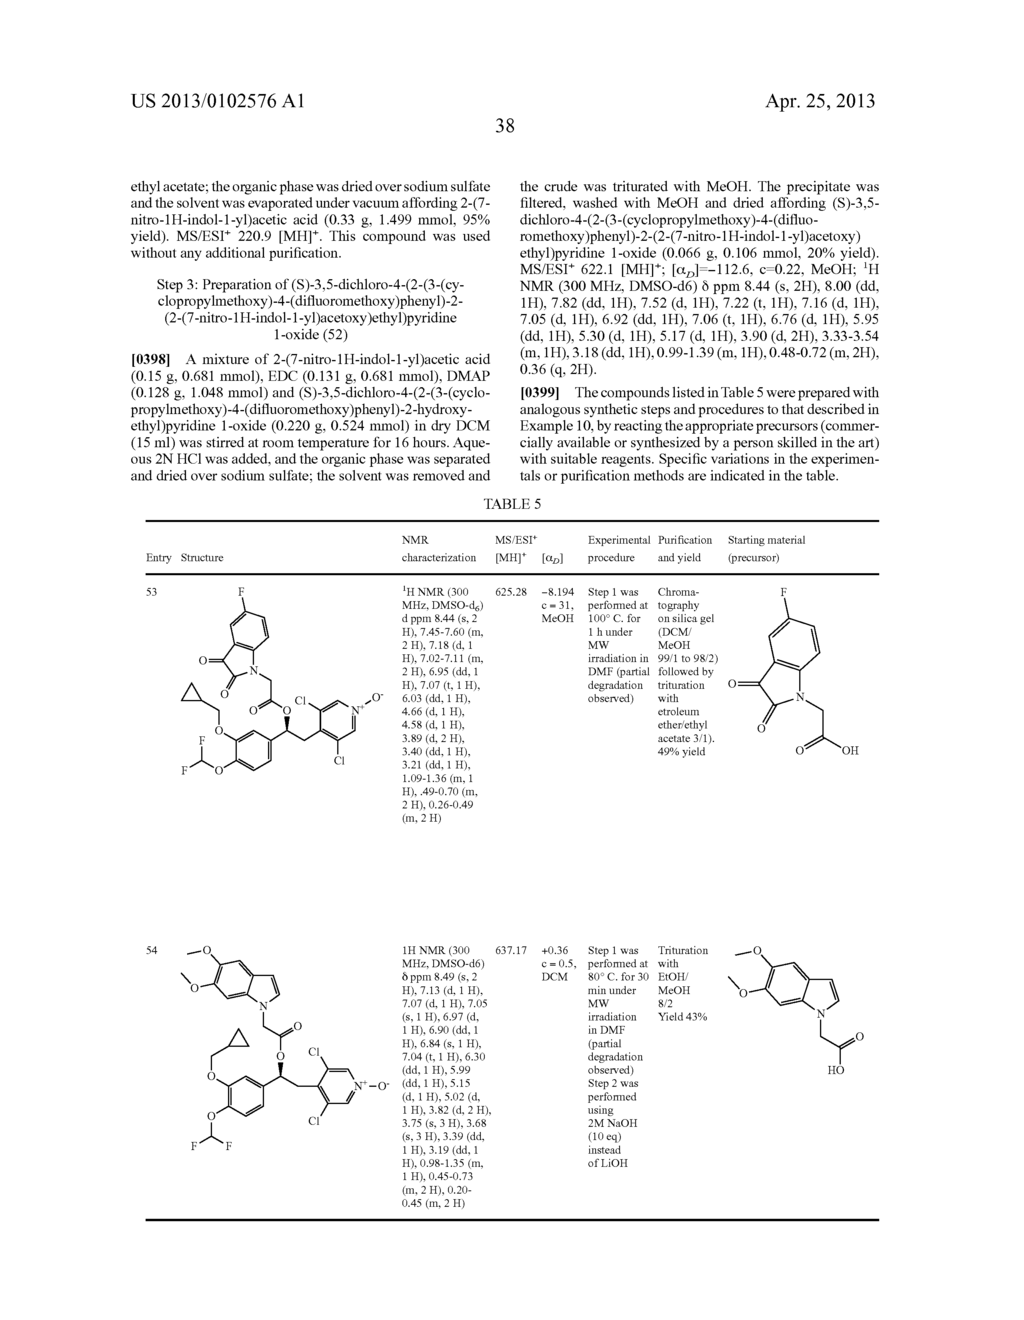 DERIVATIVES OF 1-PHENYL-2-PYRIDINYL ALKYL ALCOHOLS AS PHOSPHODIESTERASE     INHIBITORS - diagram, schematic, and image 39